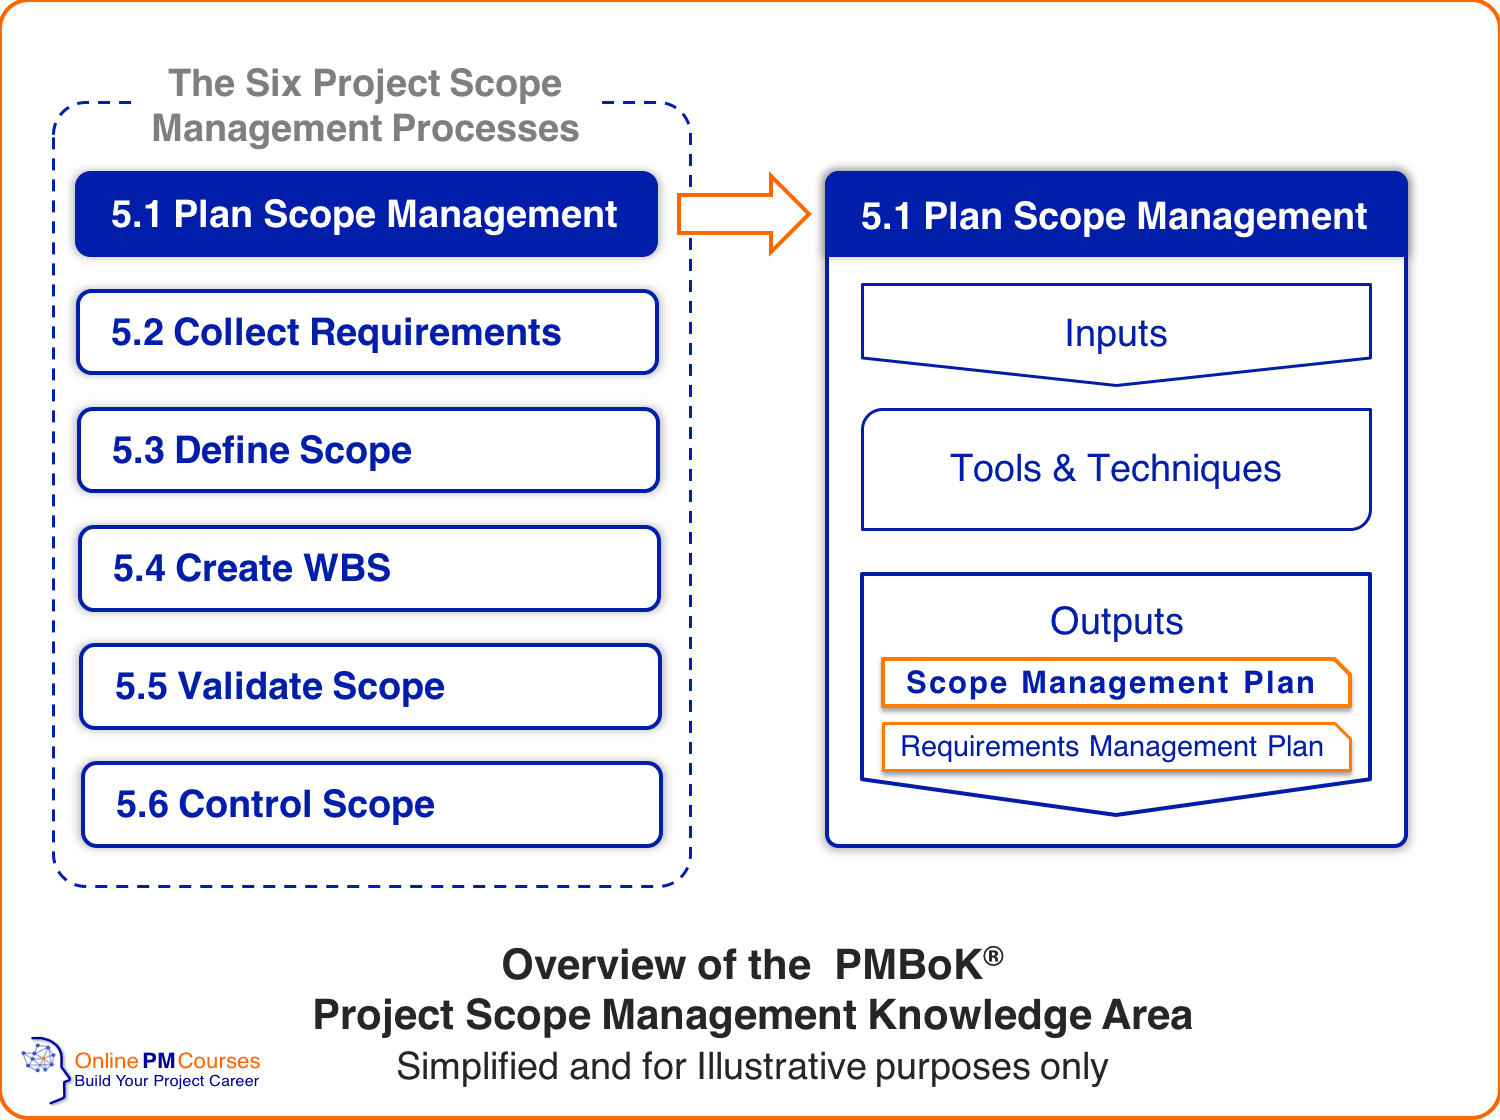 Overview of the PMBoK Project Scope Management Knowledge Area - highlighting Scope Management Plan